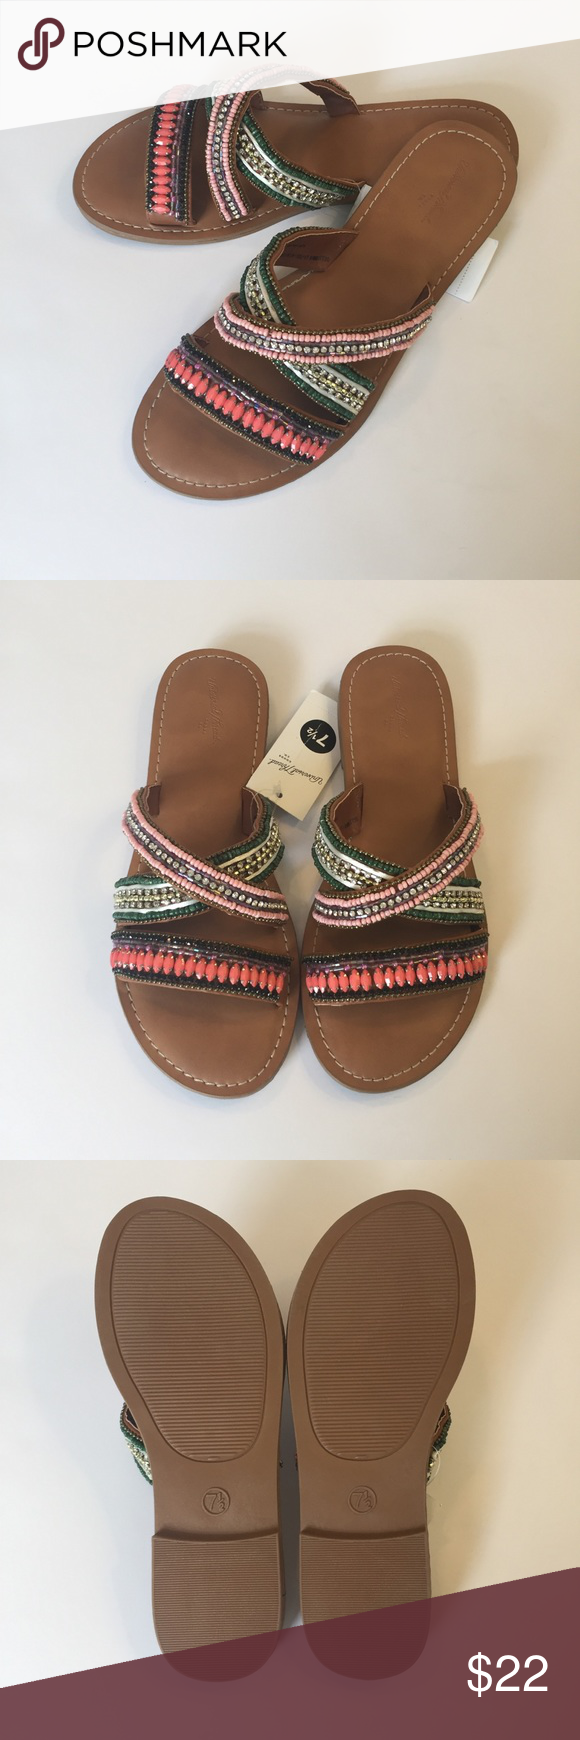 8eb5fedf237a Universal Thread Zelma Beaded Slide Sandals These are brand new with the  original tag. Never Worn. Faux leather with crisscrossed straps and  multicolored ...